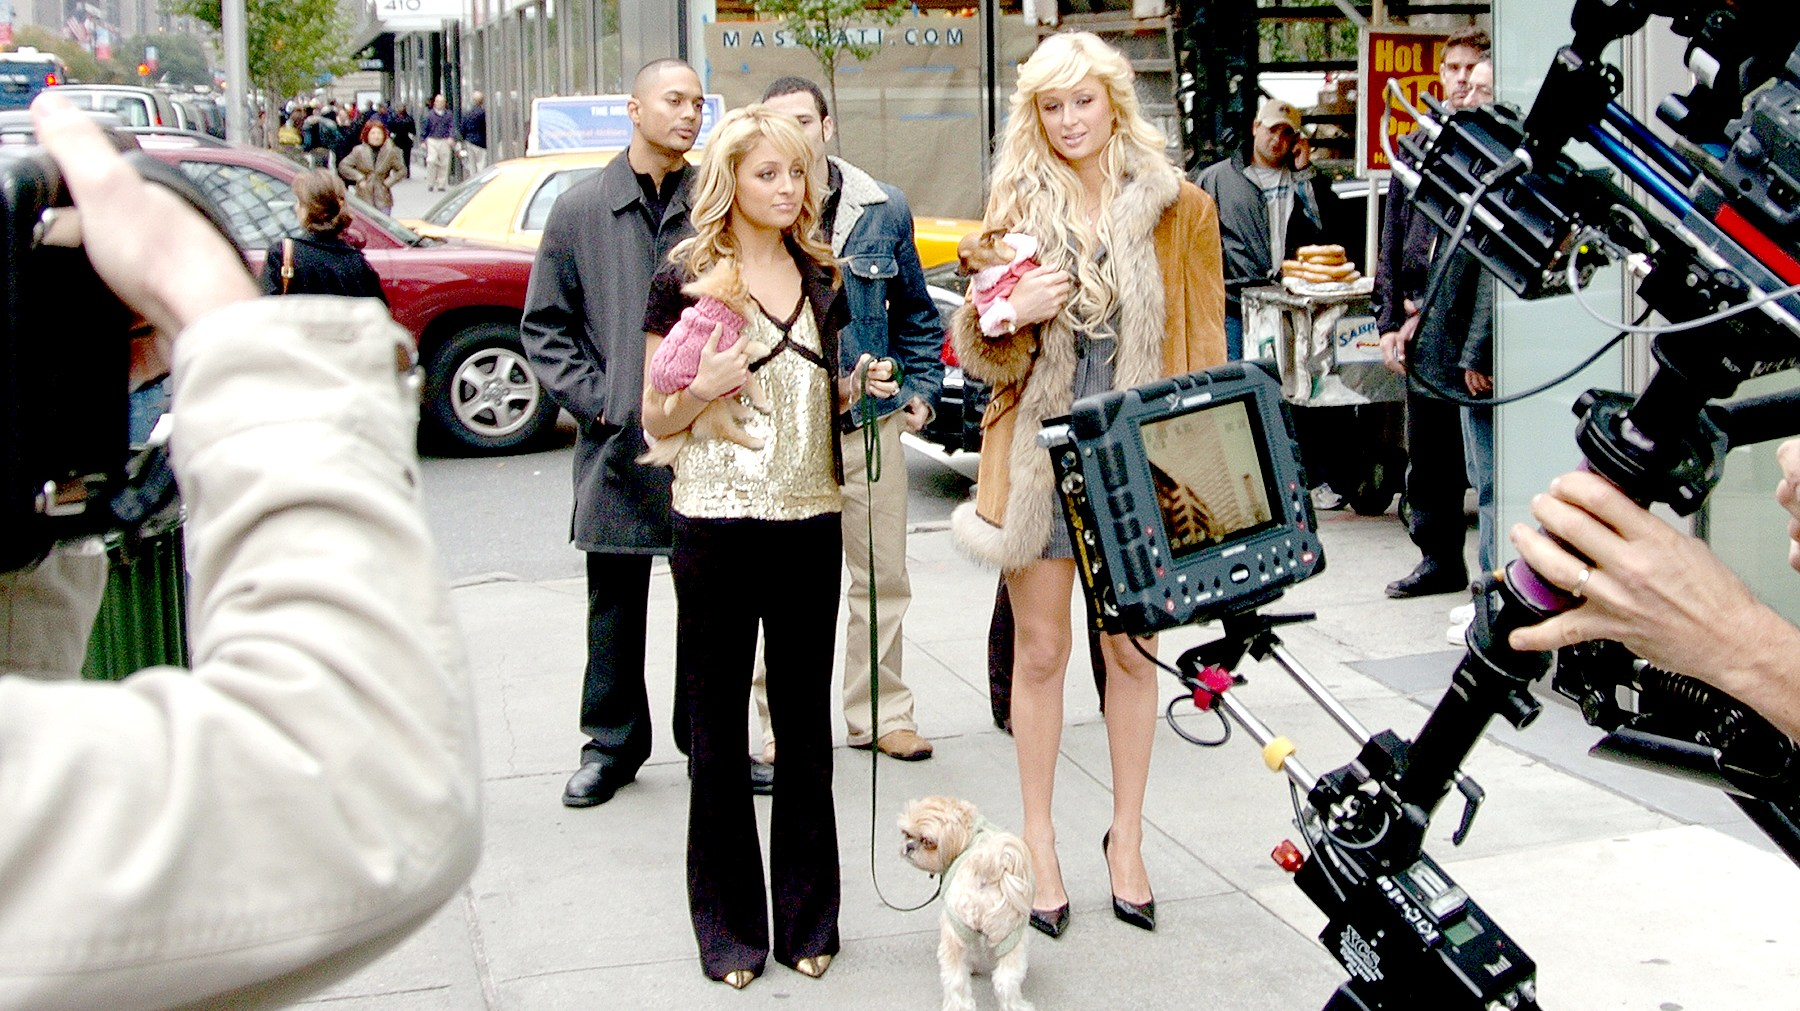 """Nicole Richie (left), Paris Hilton and their pups are on camera at Park Ave. and 55th St. as they film a scene for their TV series """"Simple Life."""""""